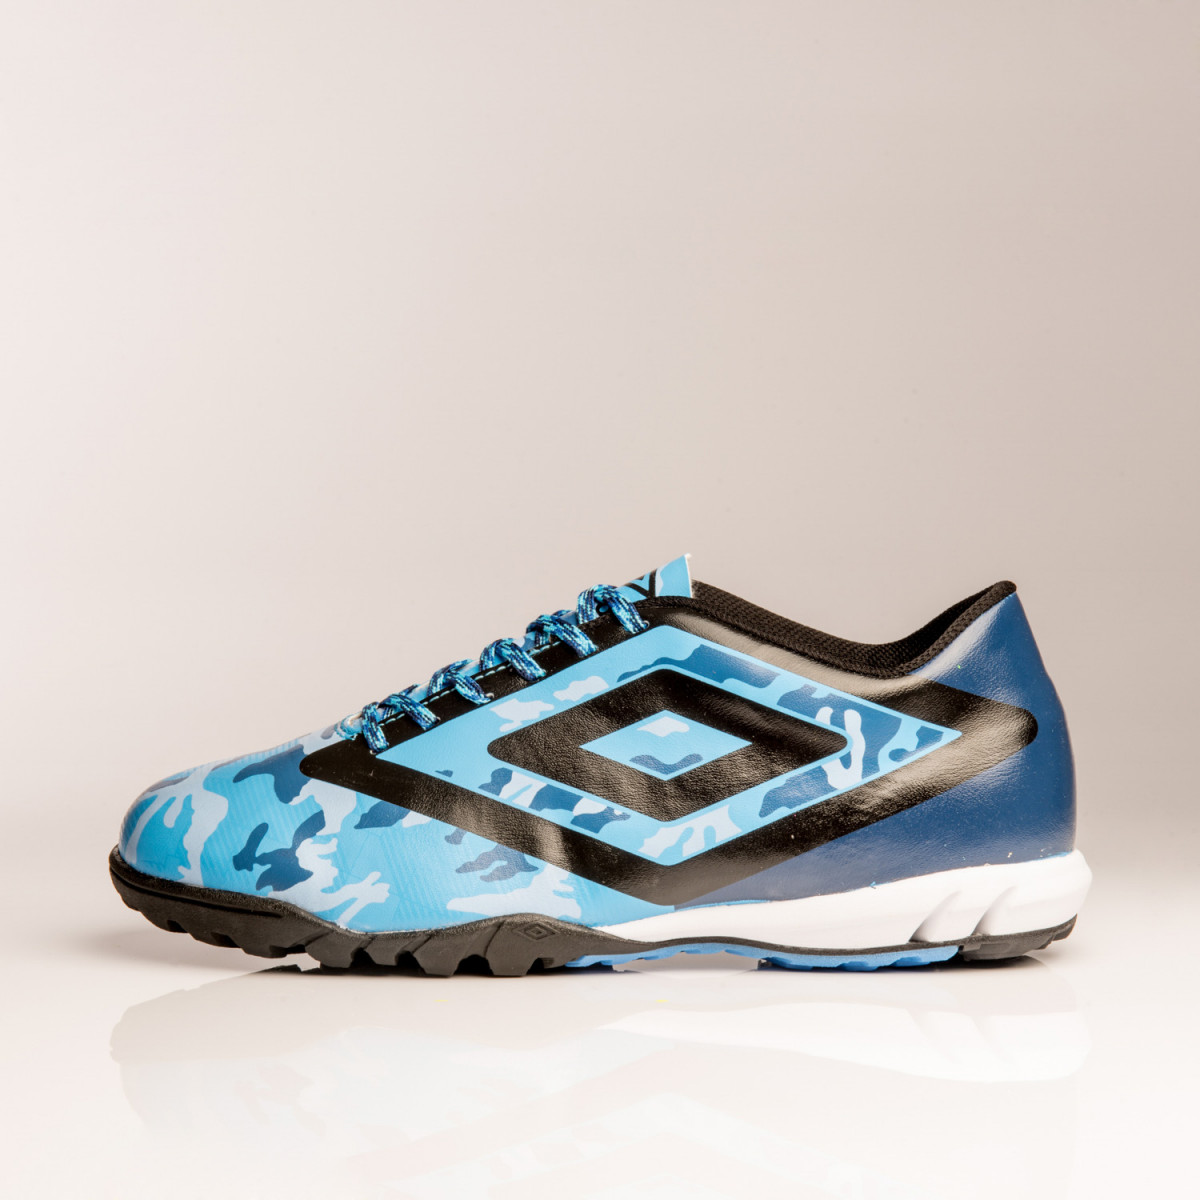 BOTINES UMBRO  SOCIETY GEO FLARE II LEAGUE